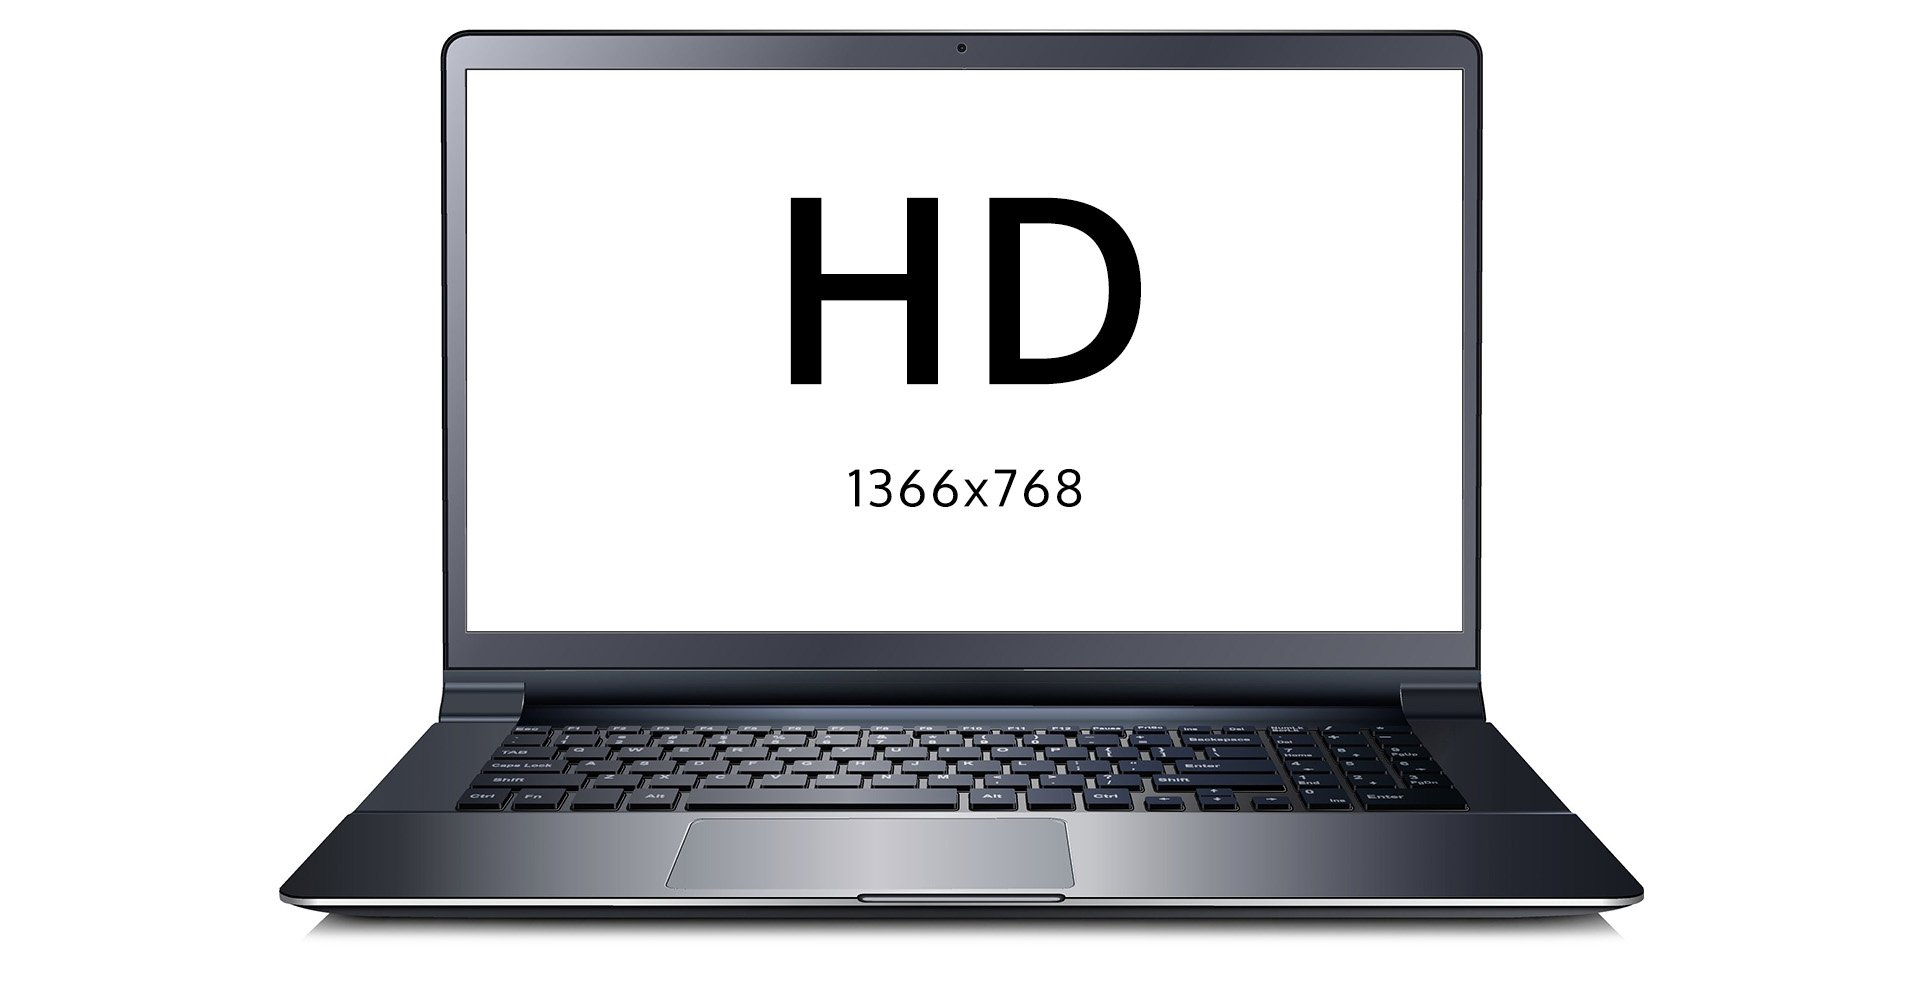 Fujitsu LifeBook A357 (S26391K425V300) 12 GB RAM/ 128 GB SSD/ 2TB HDD/ Windows 10 Pro                             HD 1366x768 resolutsioon